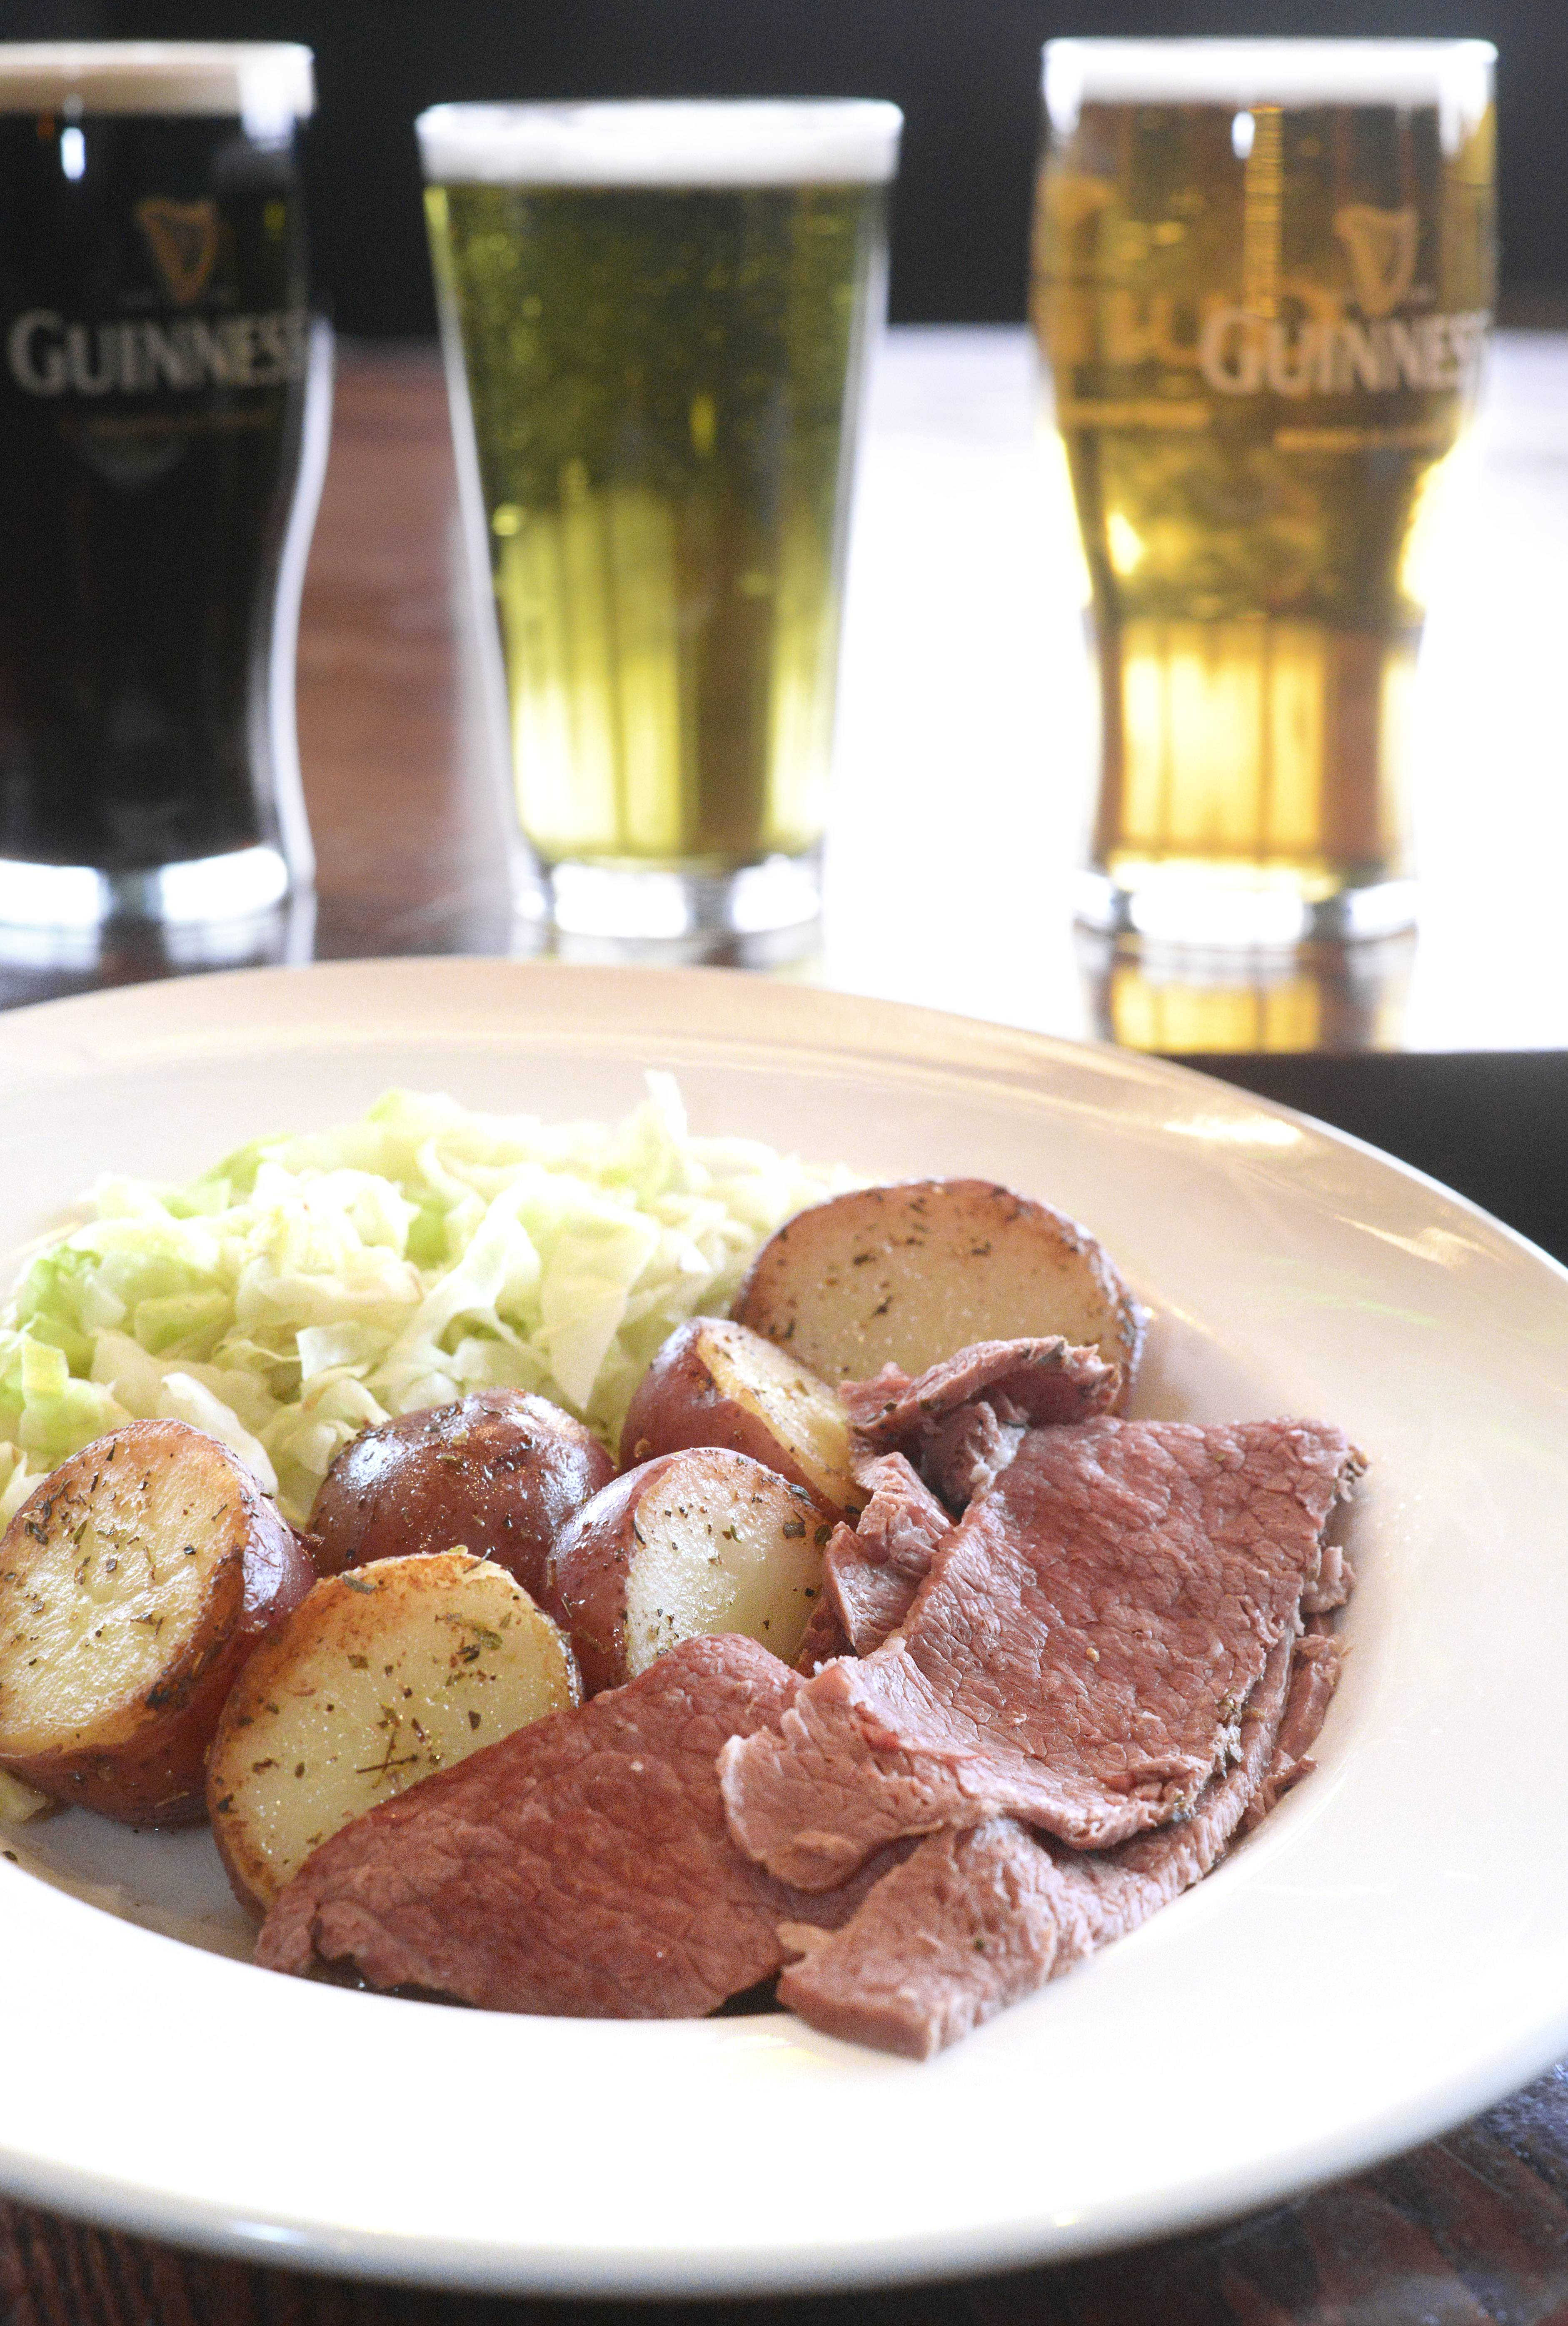 Corned beef and cabbage will be front and center Friday through Monday at Claddagh Irish Pub in Geneva.